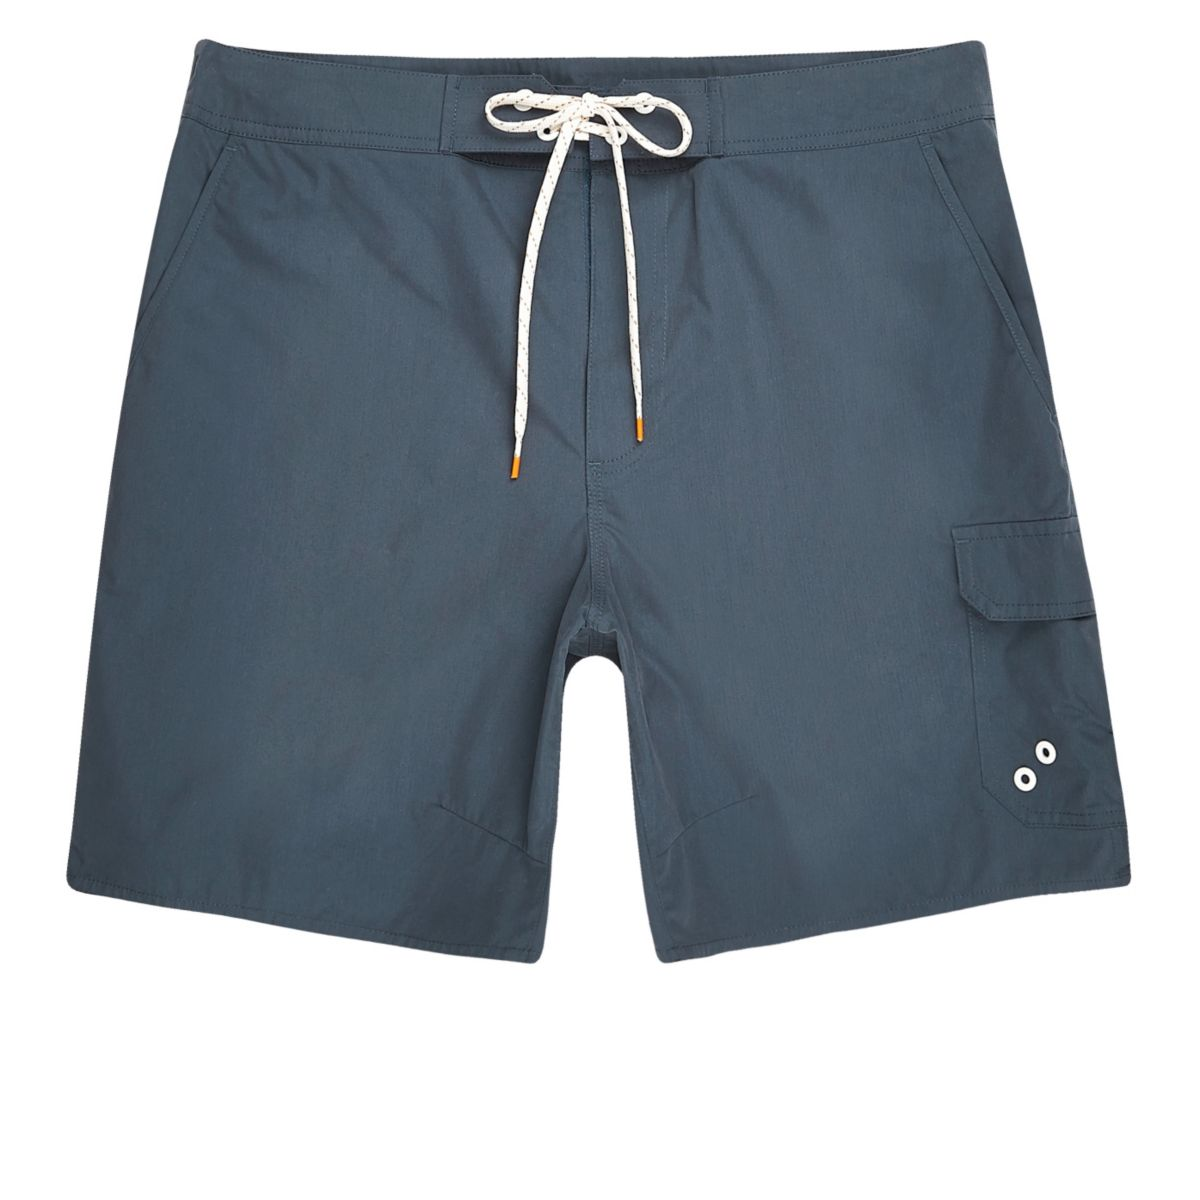 Navy blue pocket board shorts